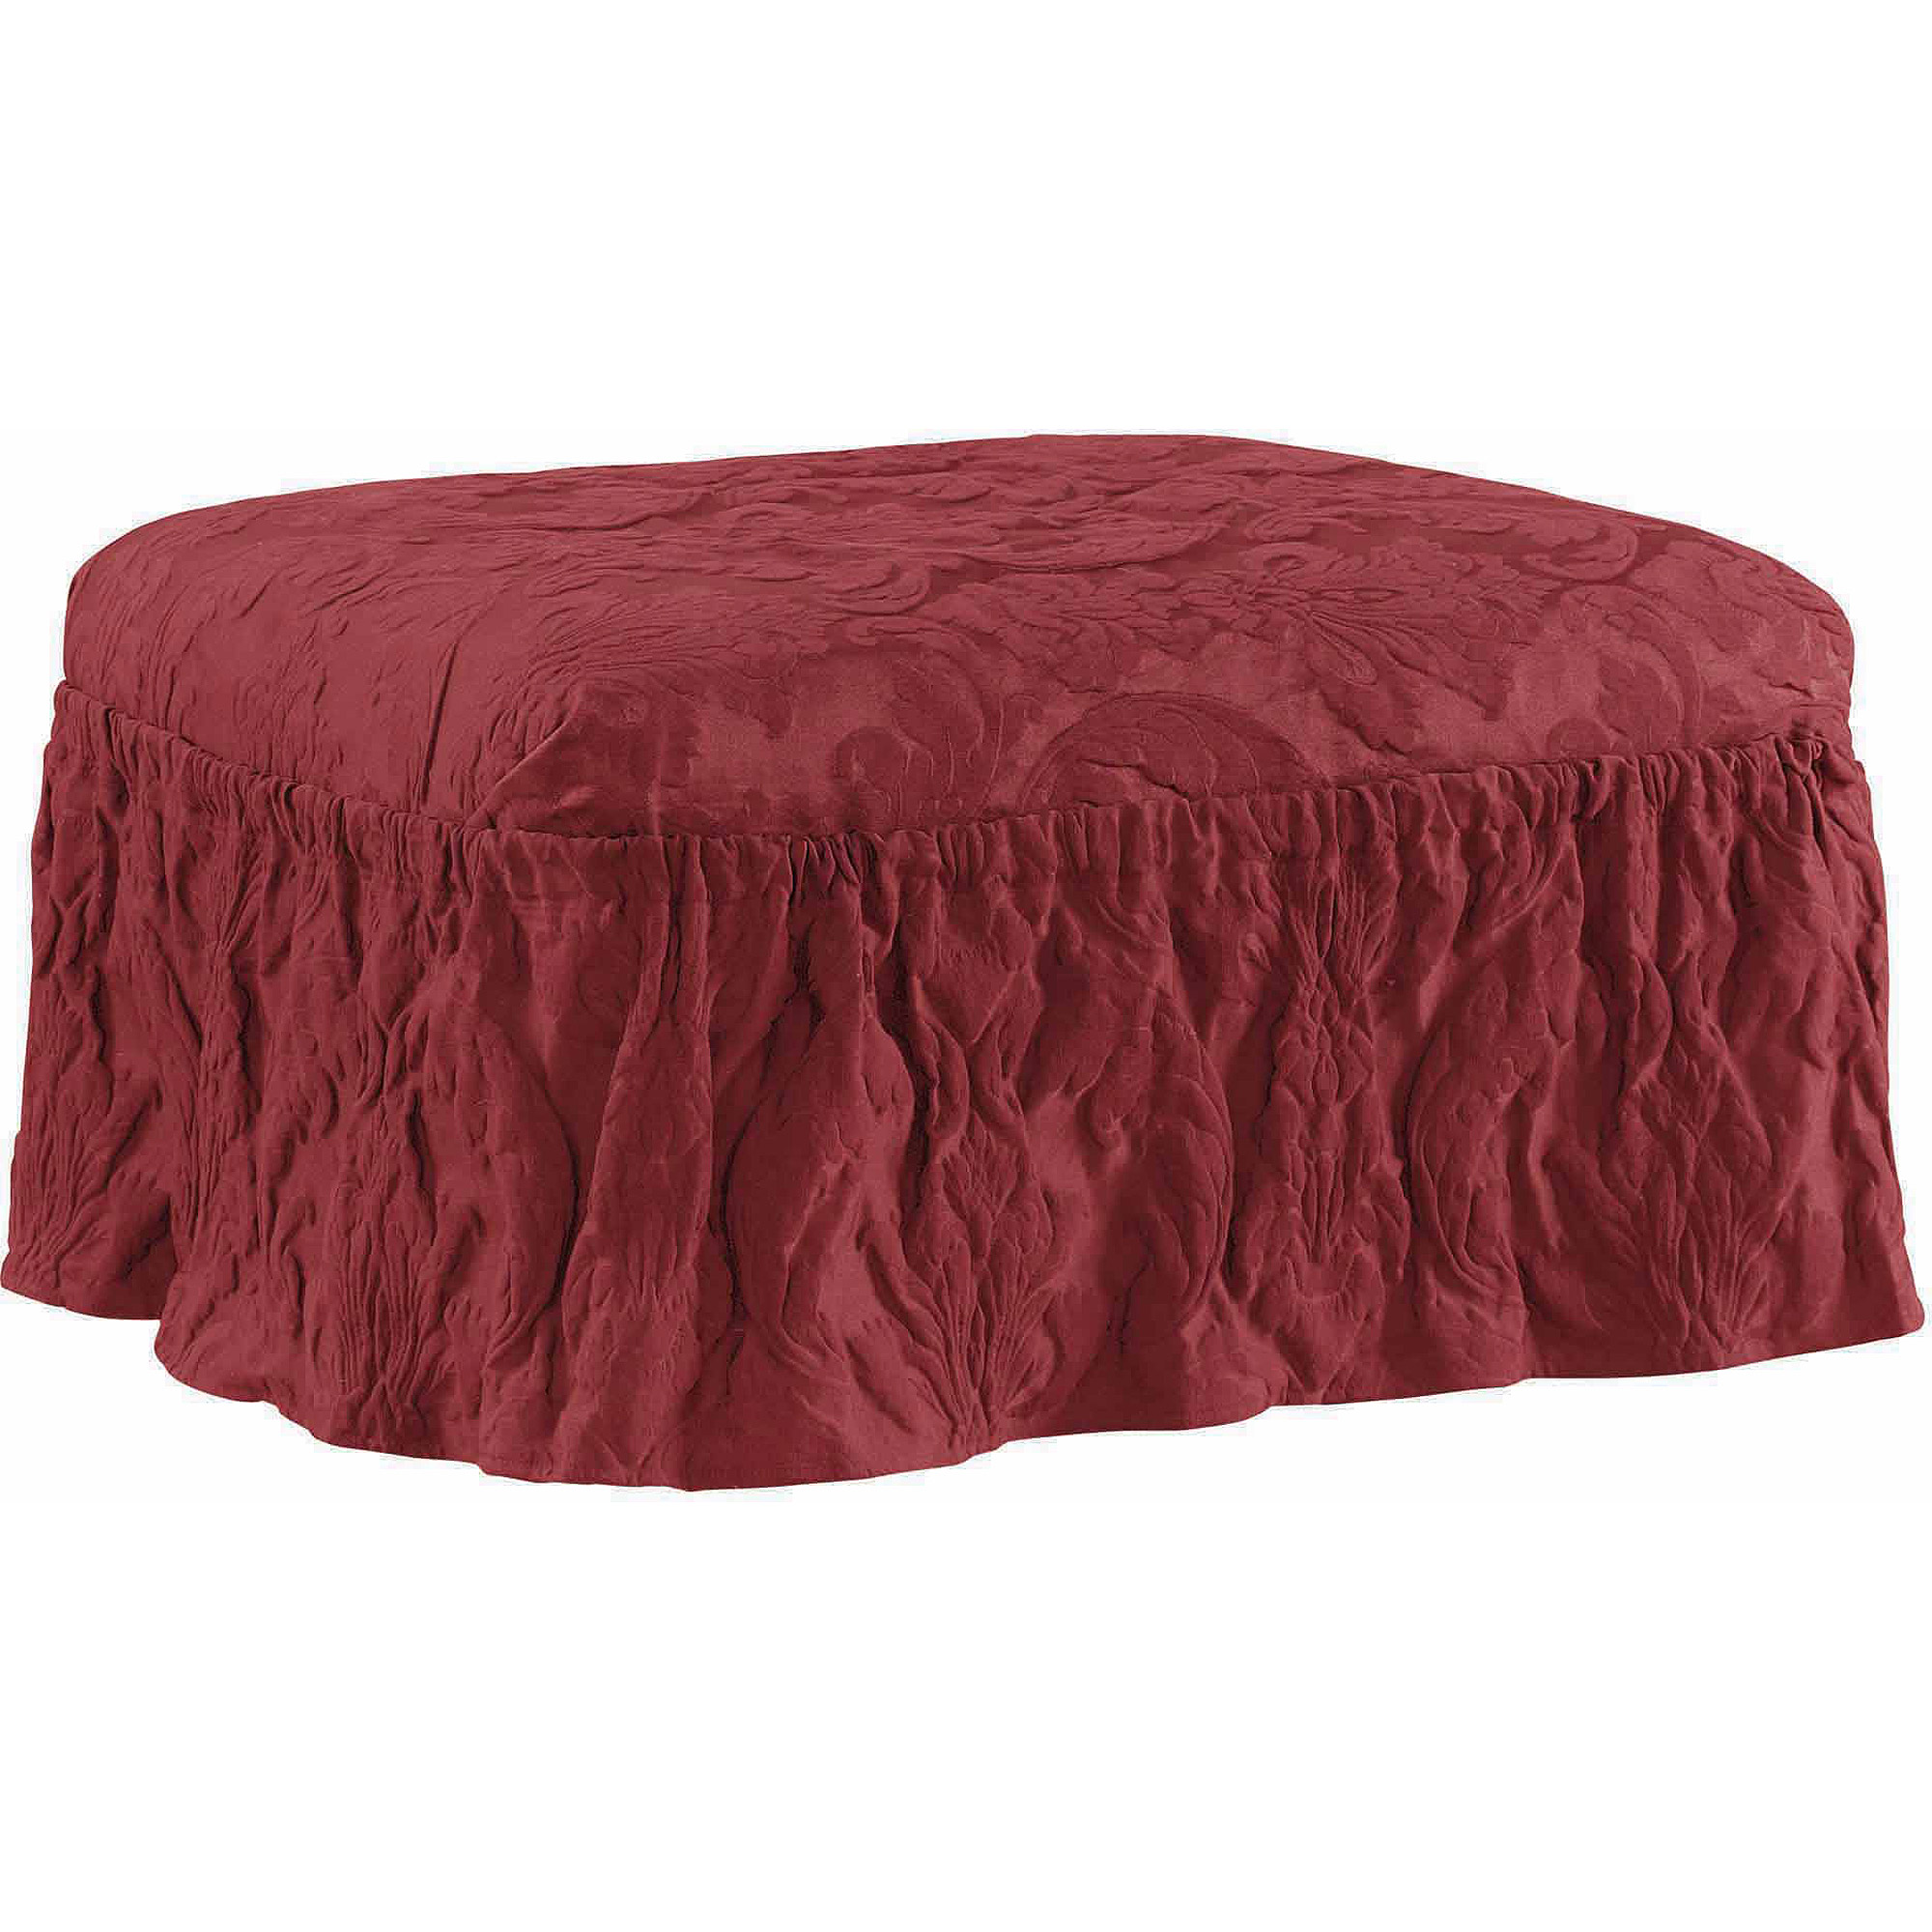 wayfair fit slipcover sure furniture ottoman matelasse pdx oversized reviews damask